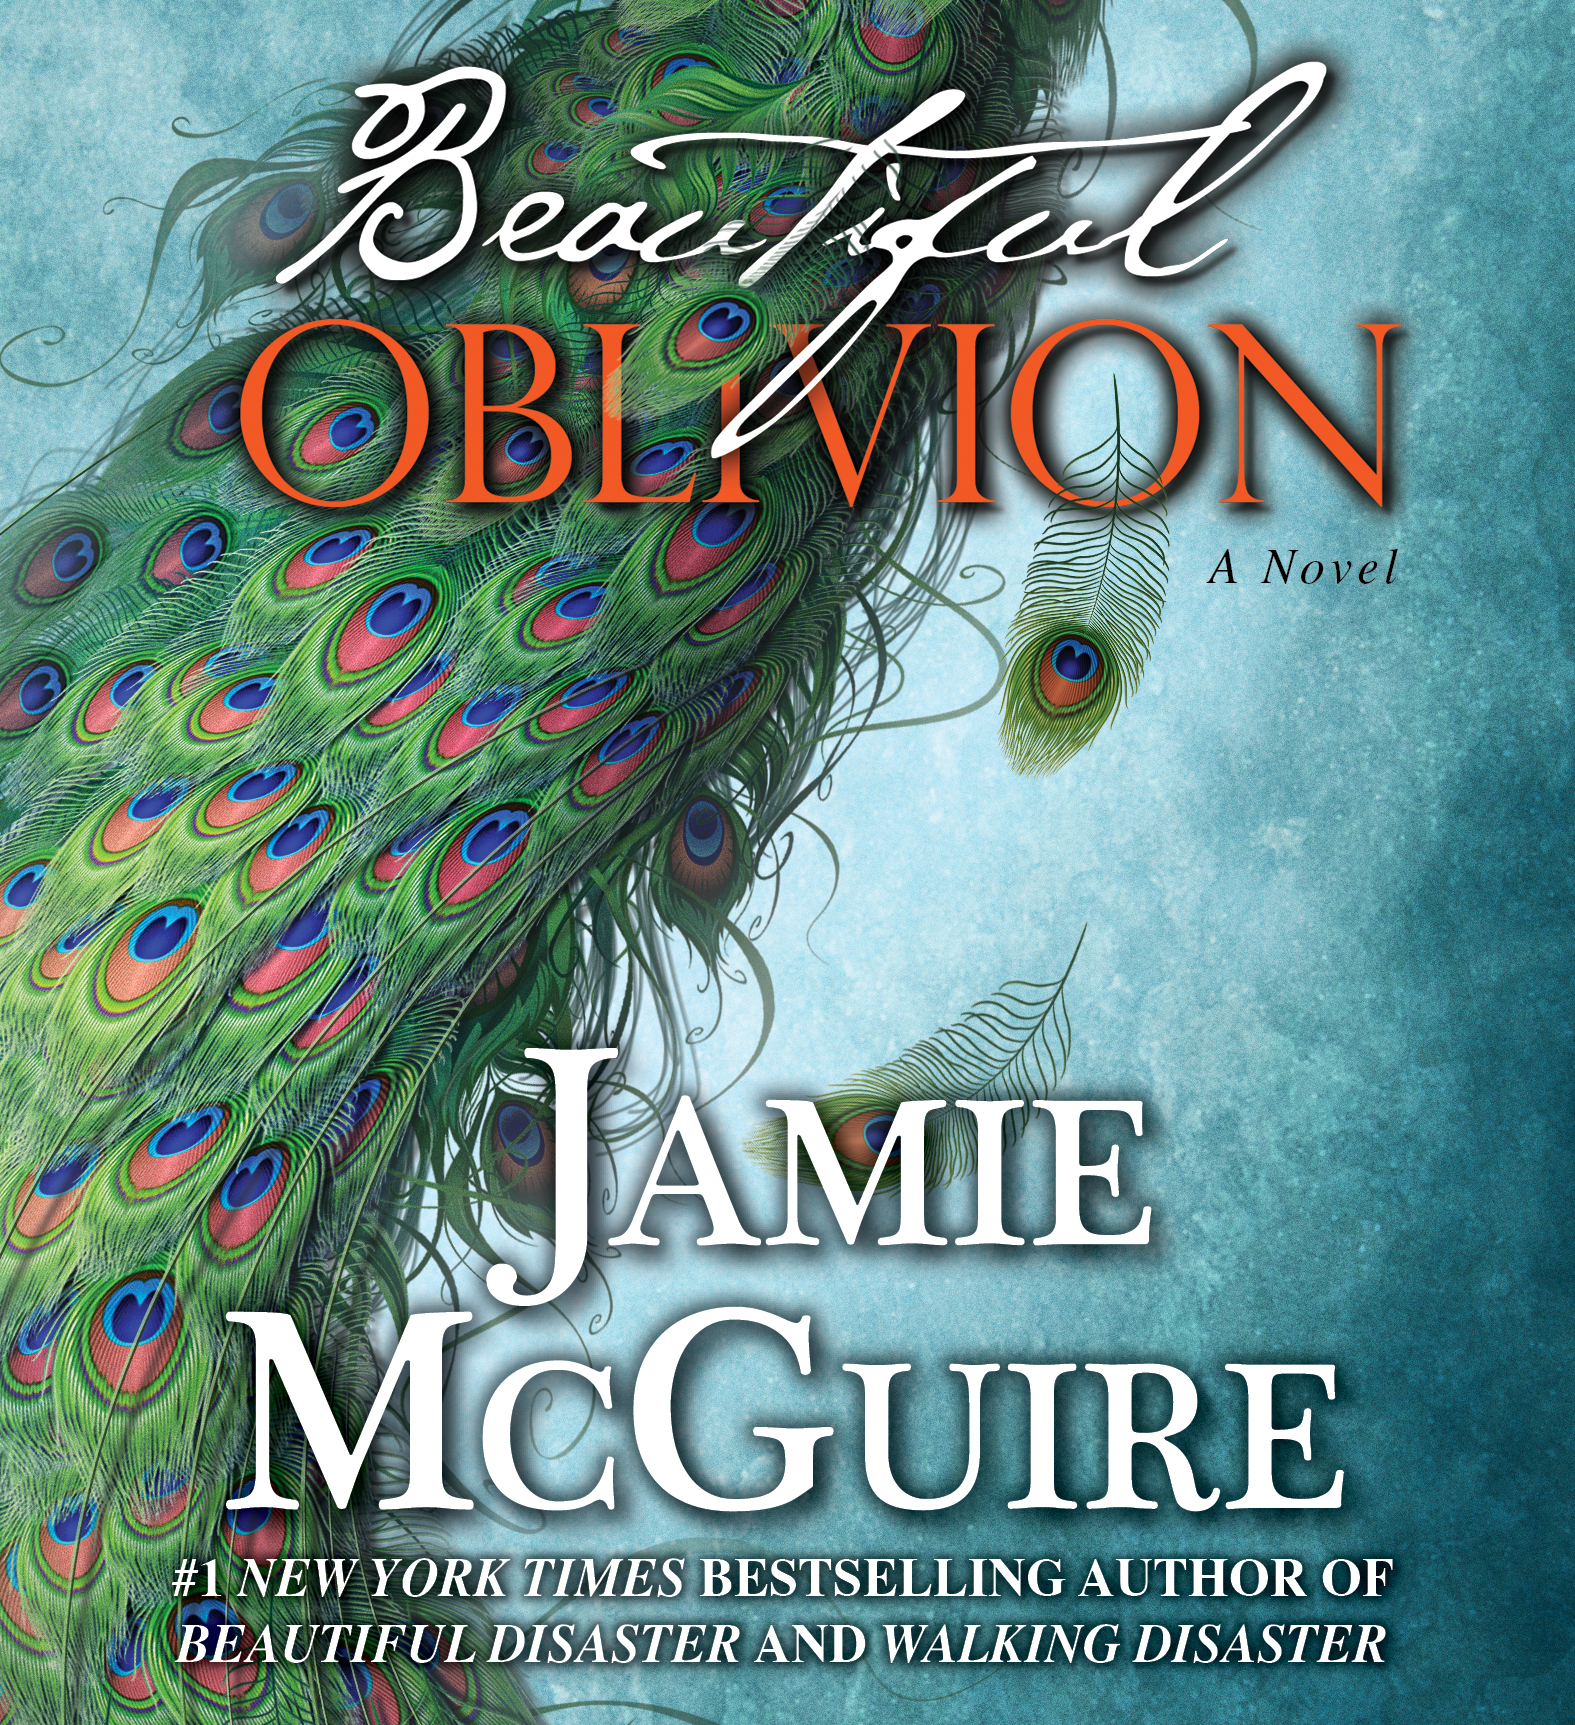 Beautiful Disaster Book Cover : Jamie mcguire official publisher page simon schuster